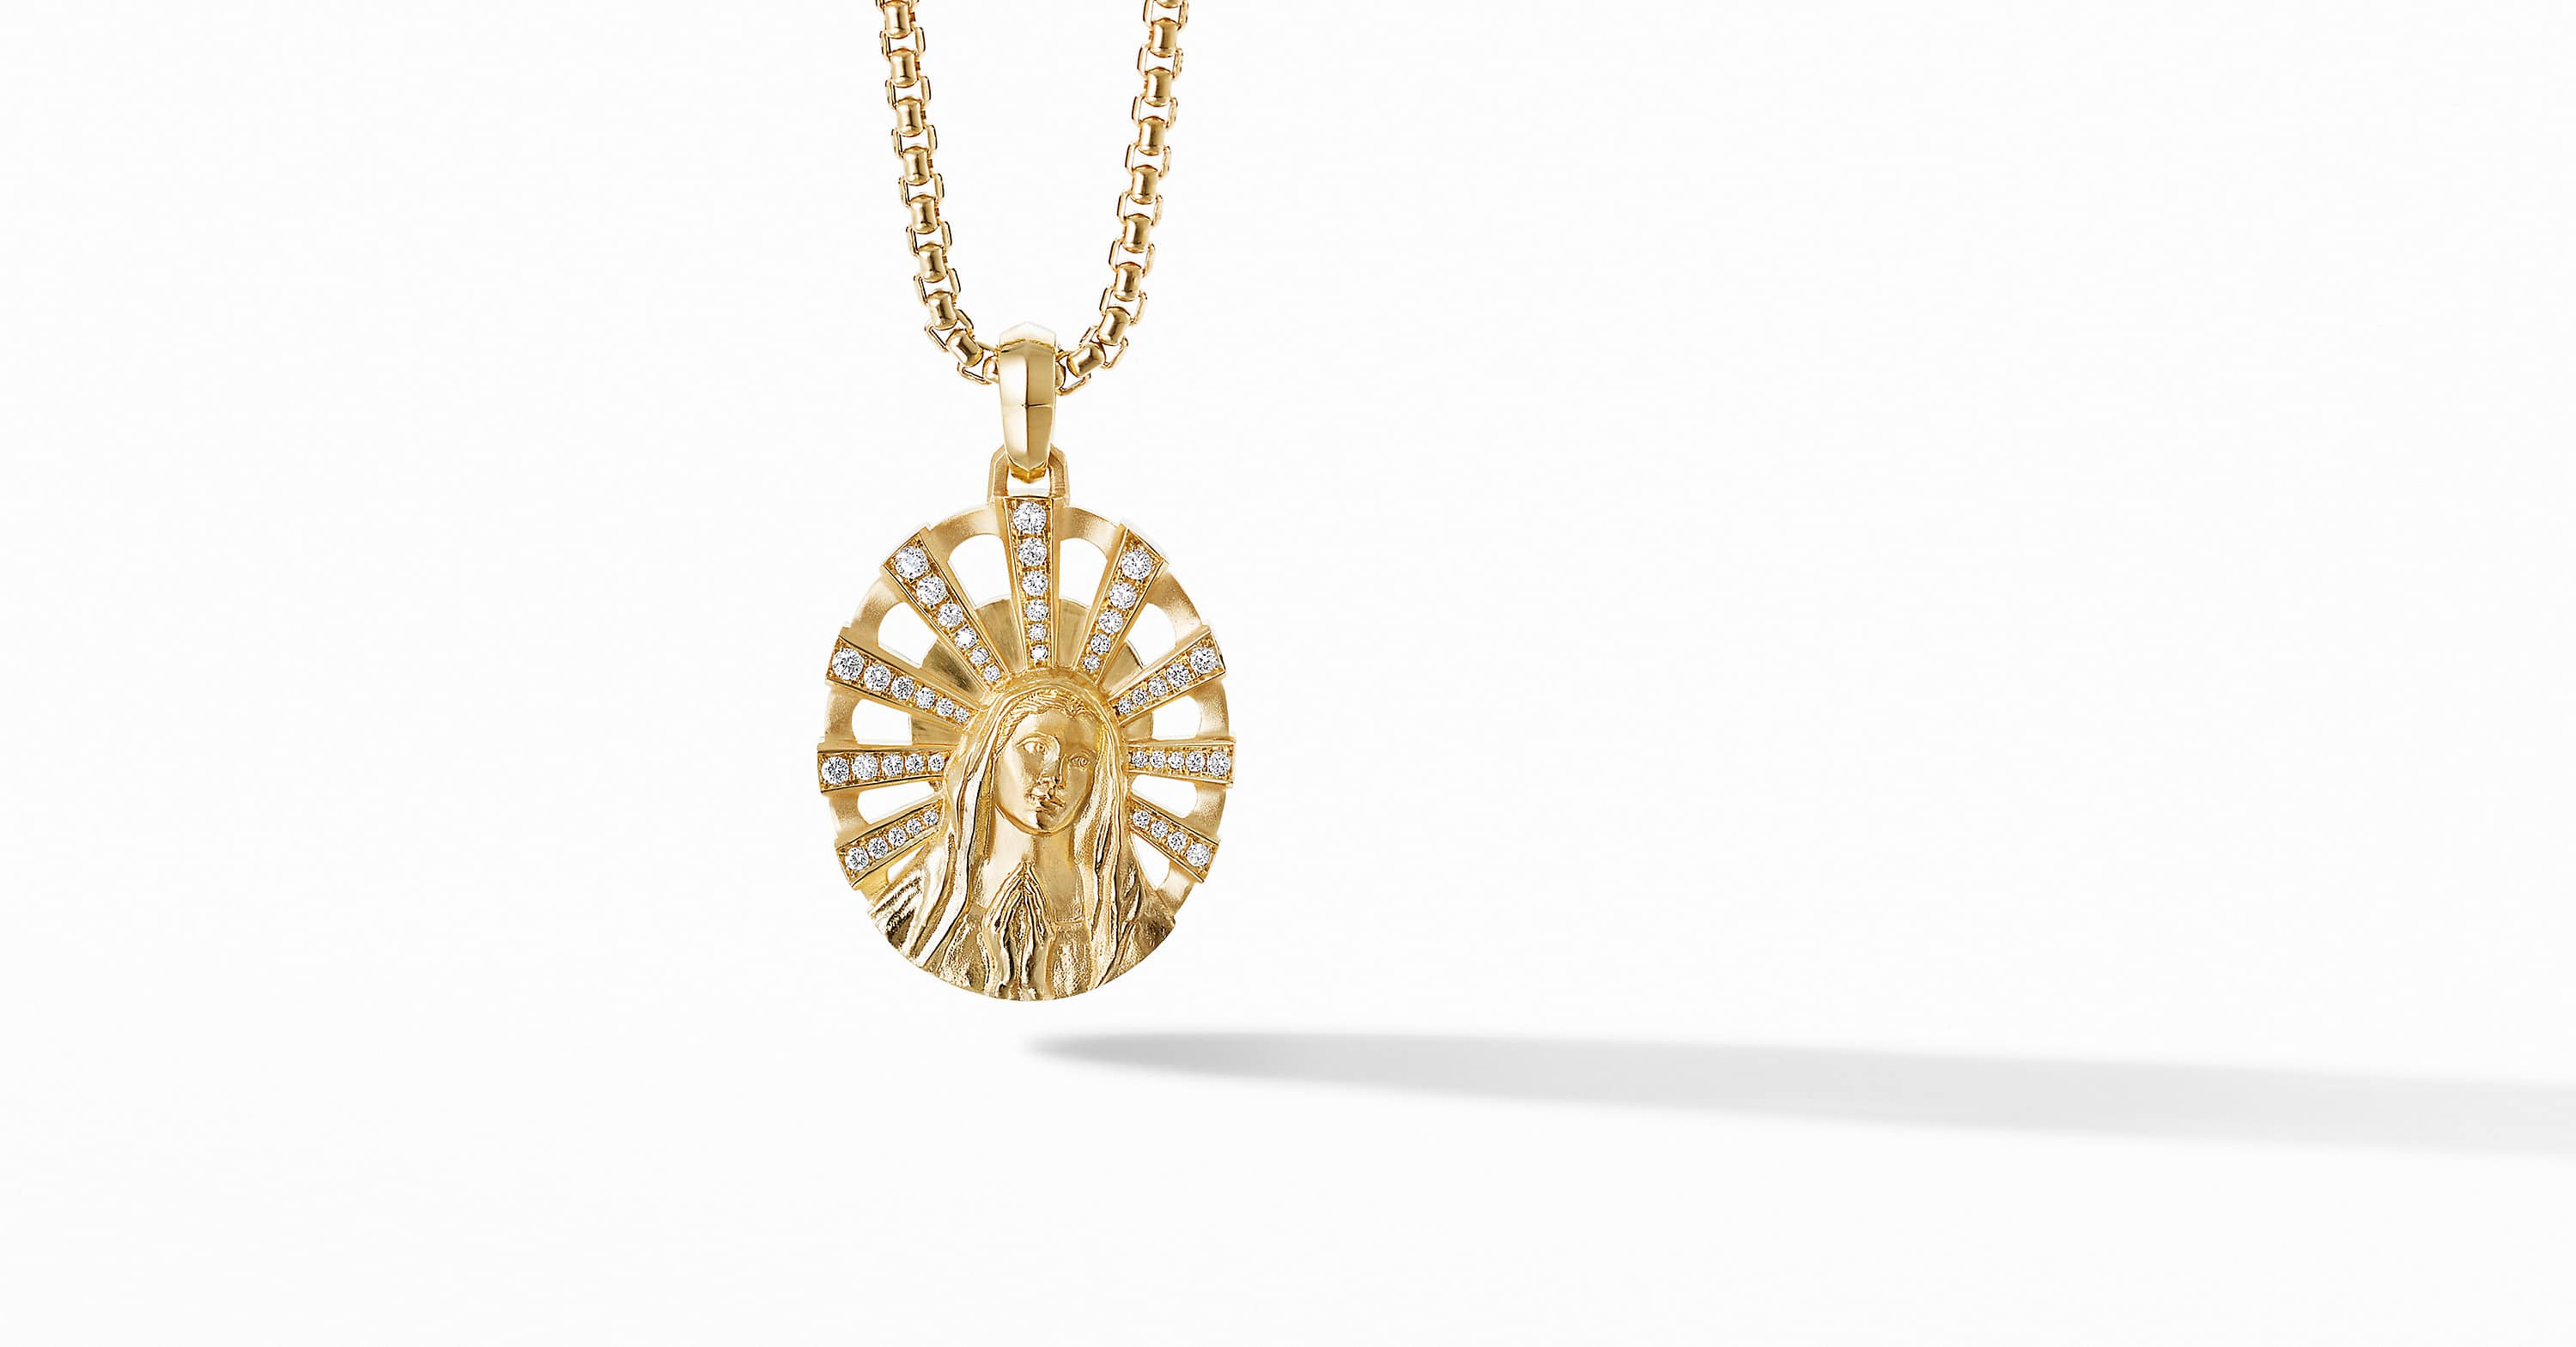 Madonna Amulet in 18K Yellow Gold with Pavé